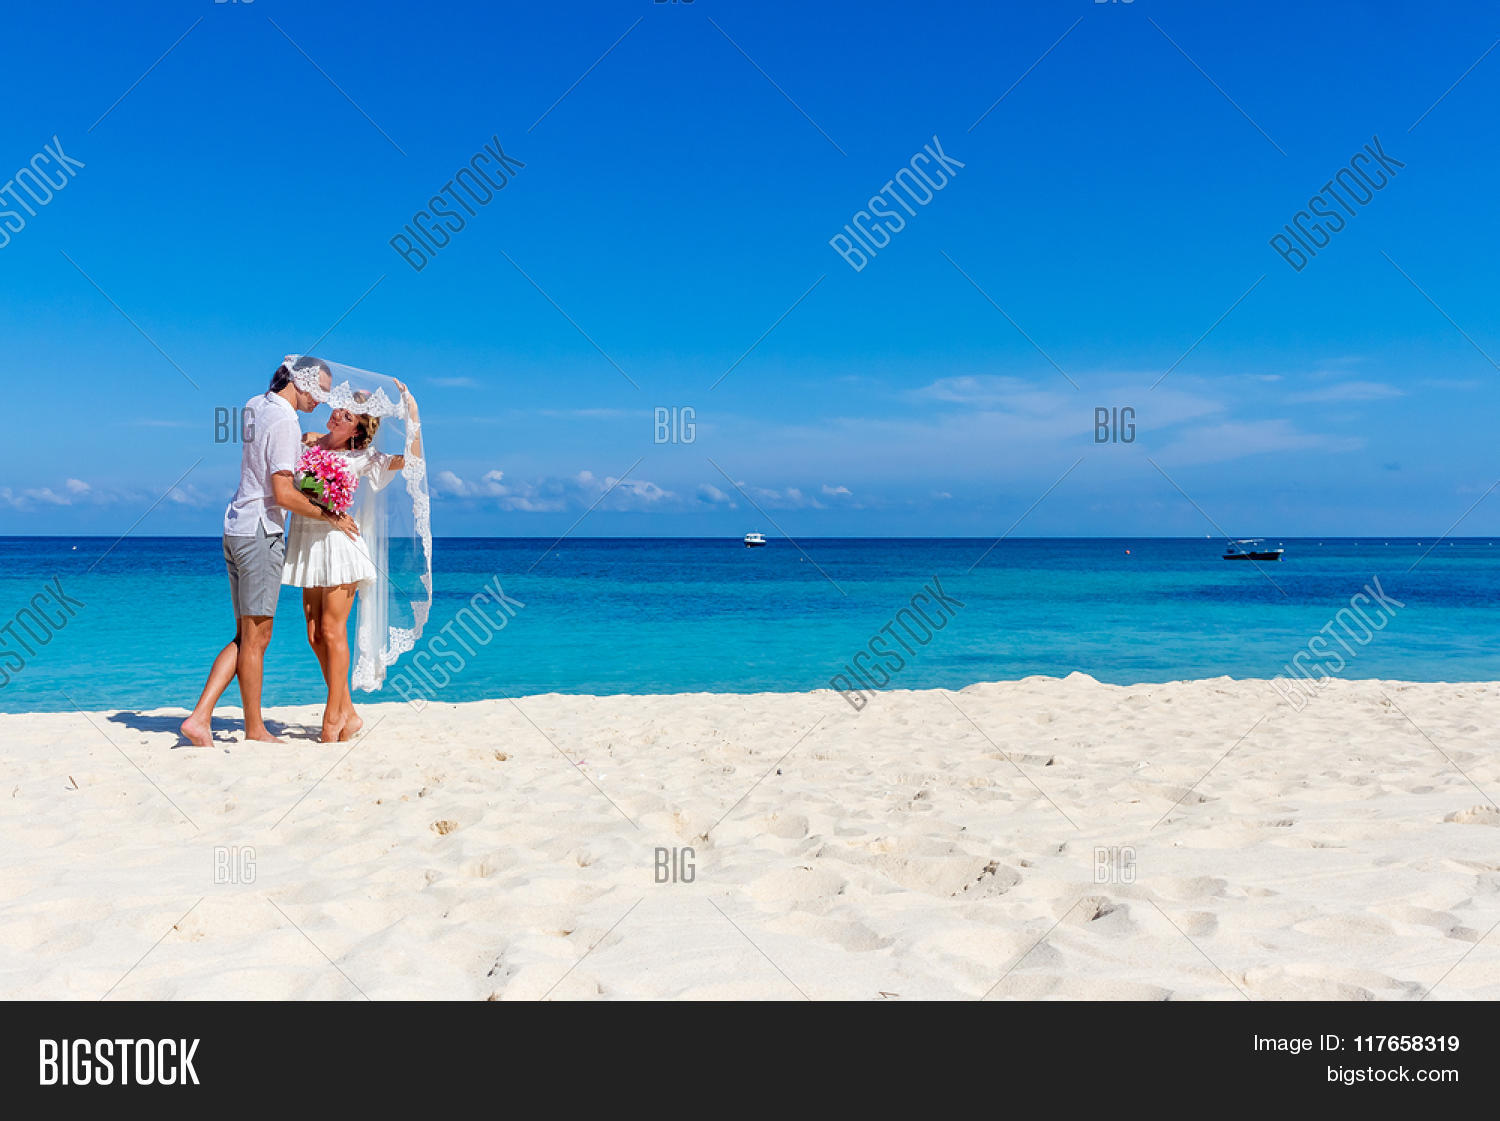 1f9919dbc8 outdoor portrait of young happy couple on wedding day, outdoor beach wedding  on tropical beach